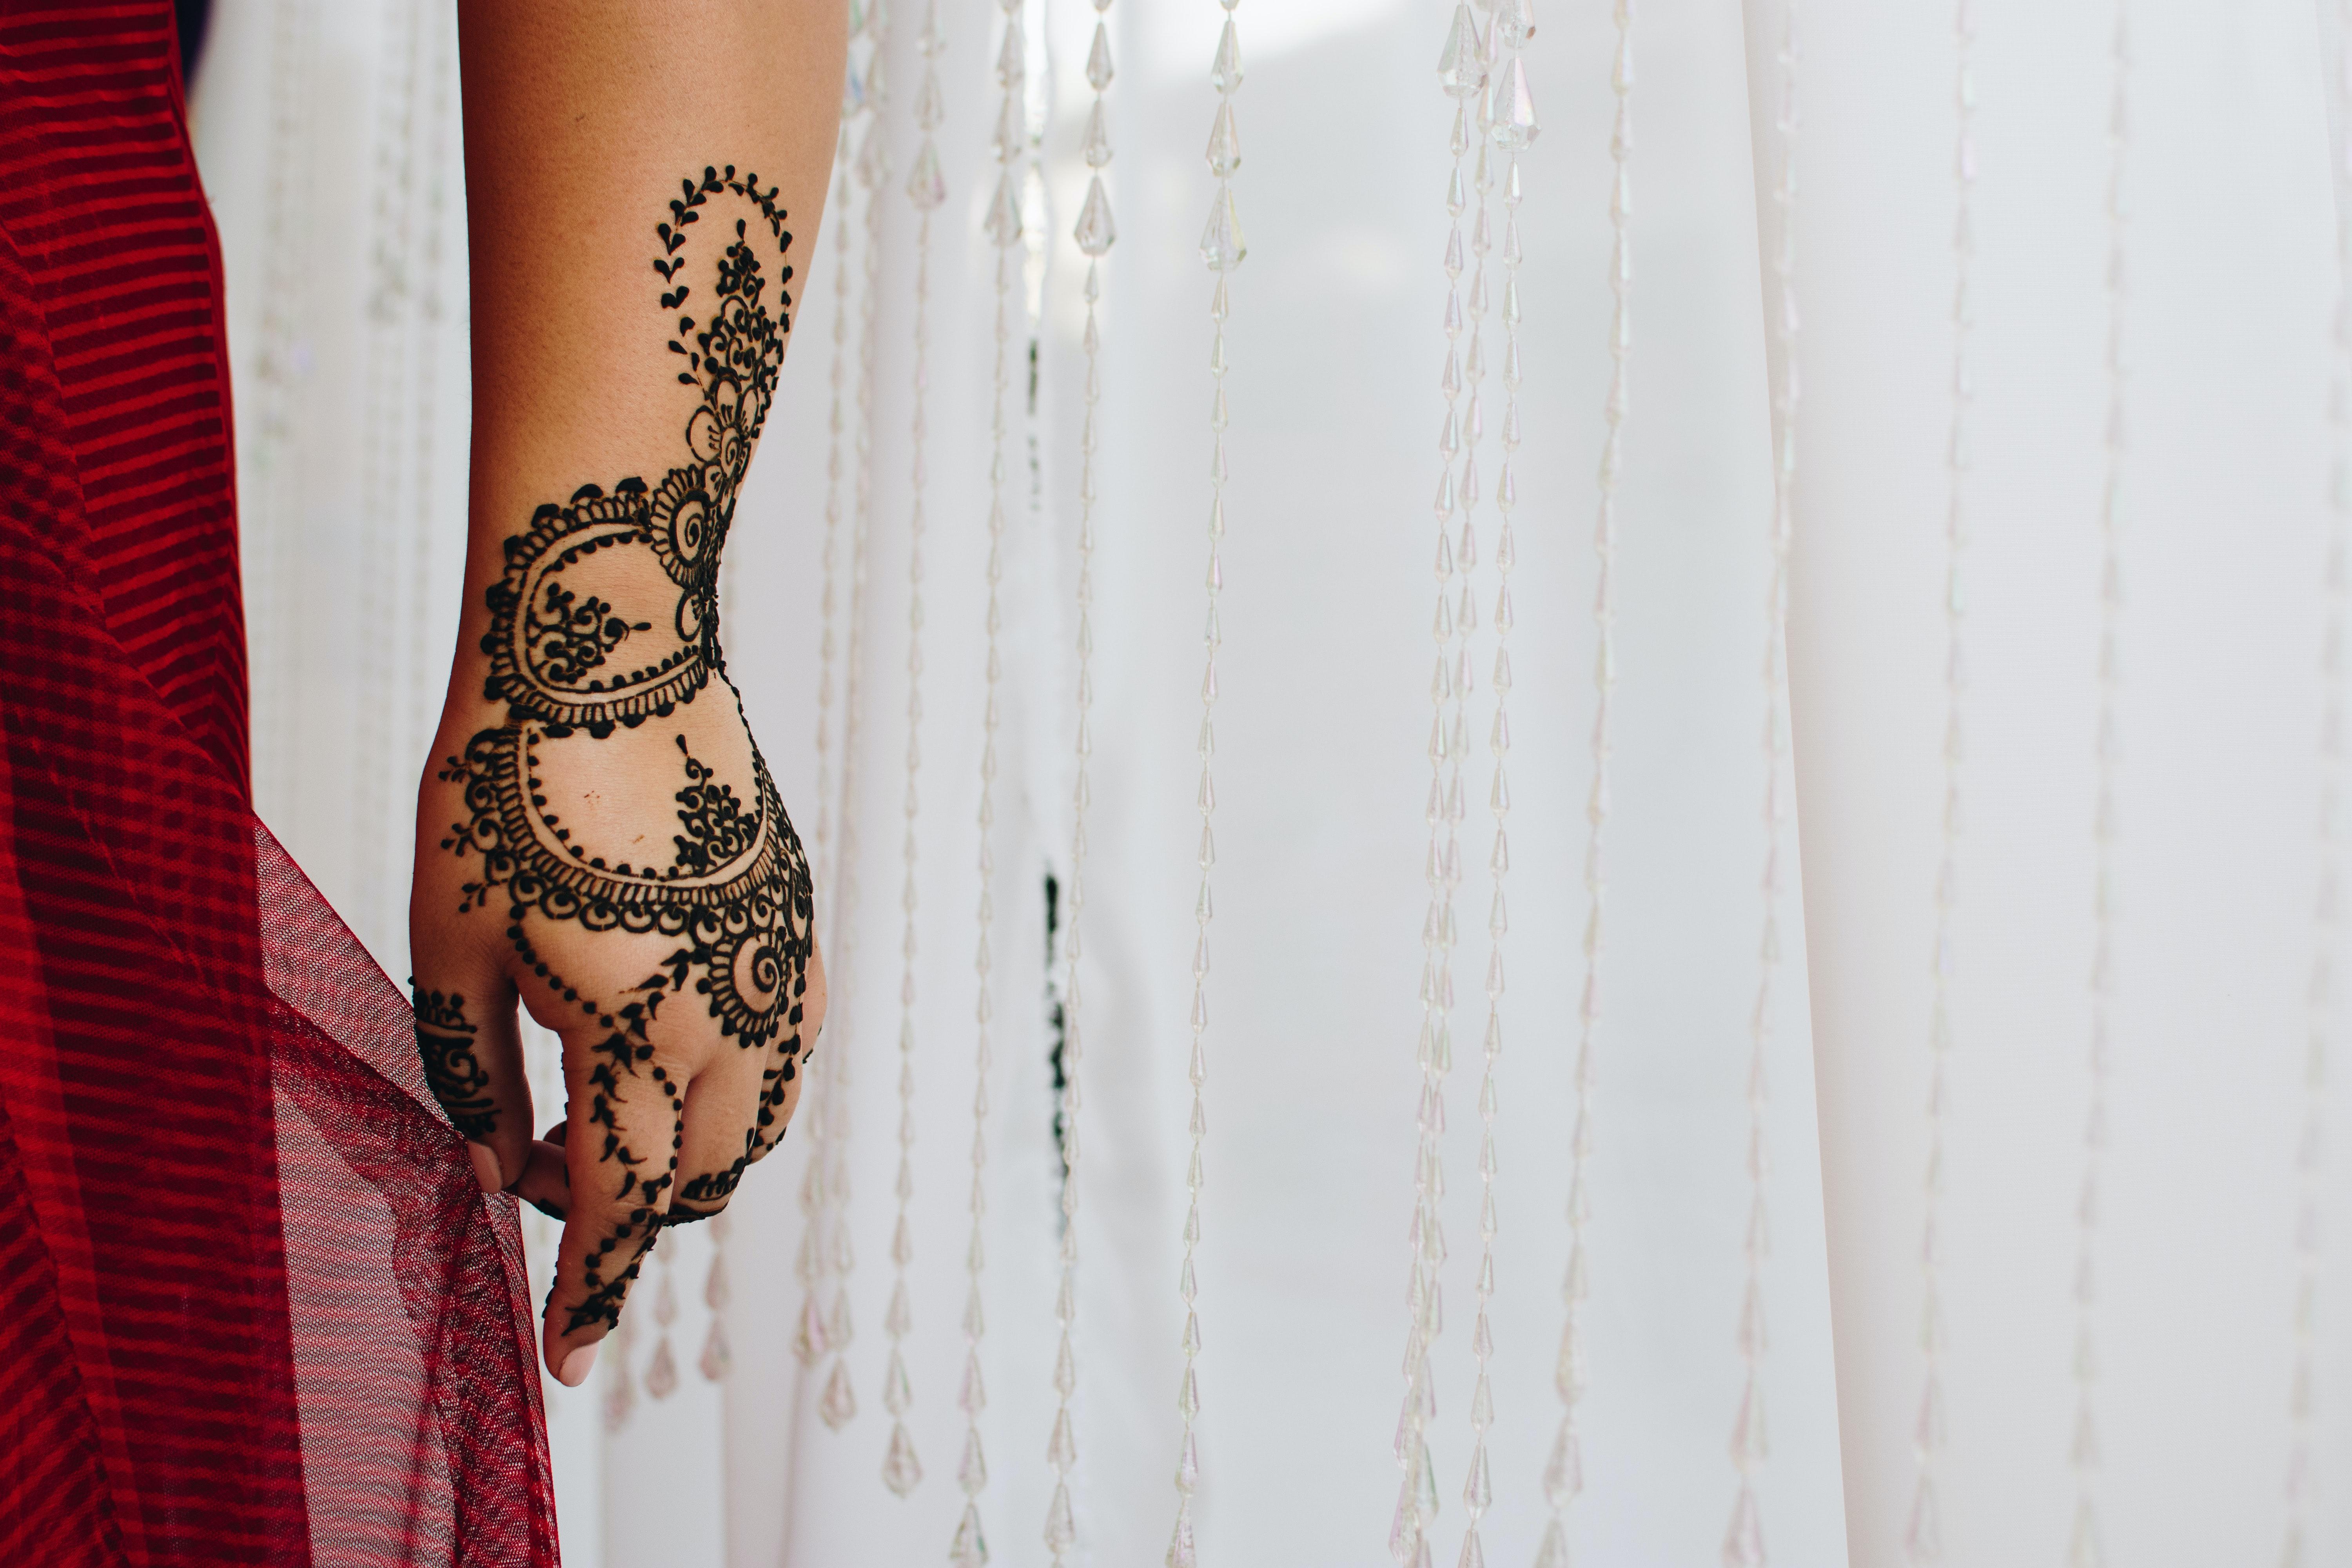 person showing bridal tattoo